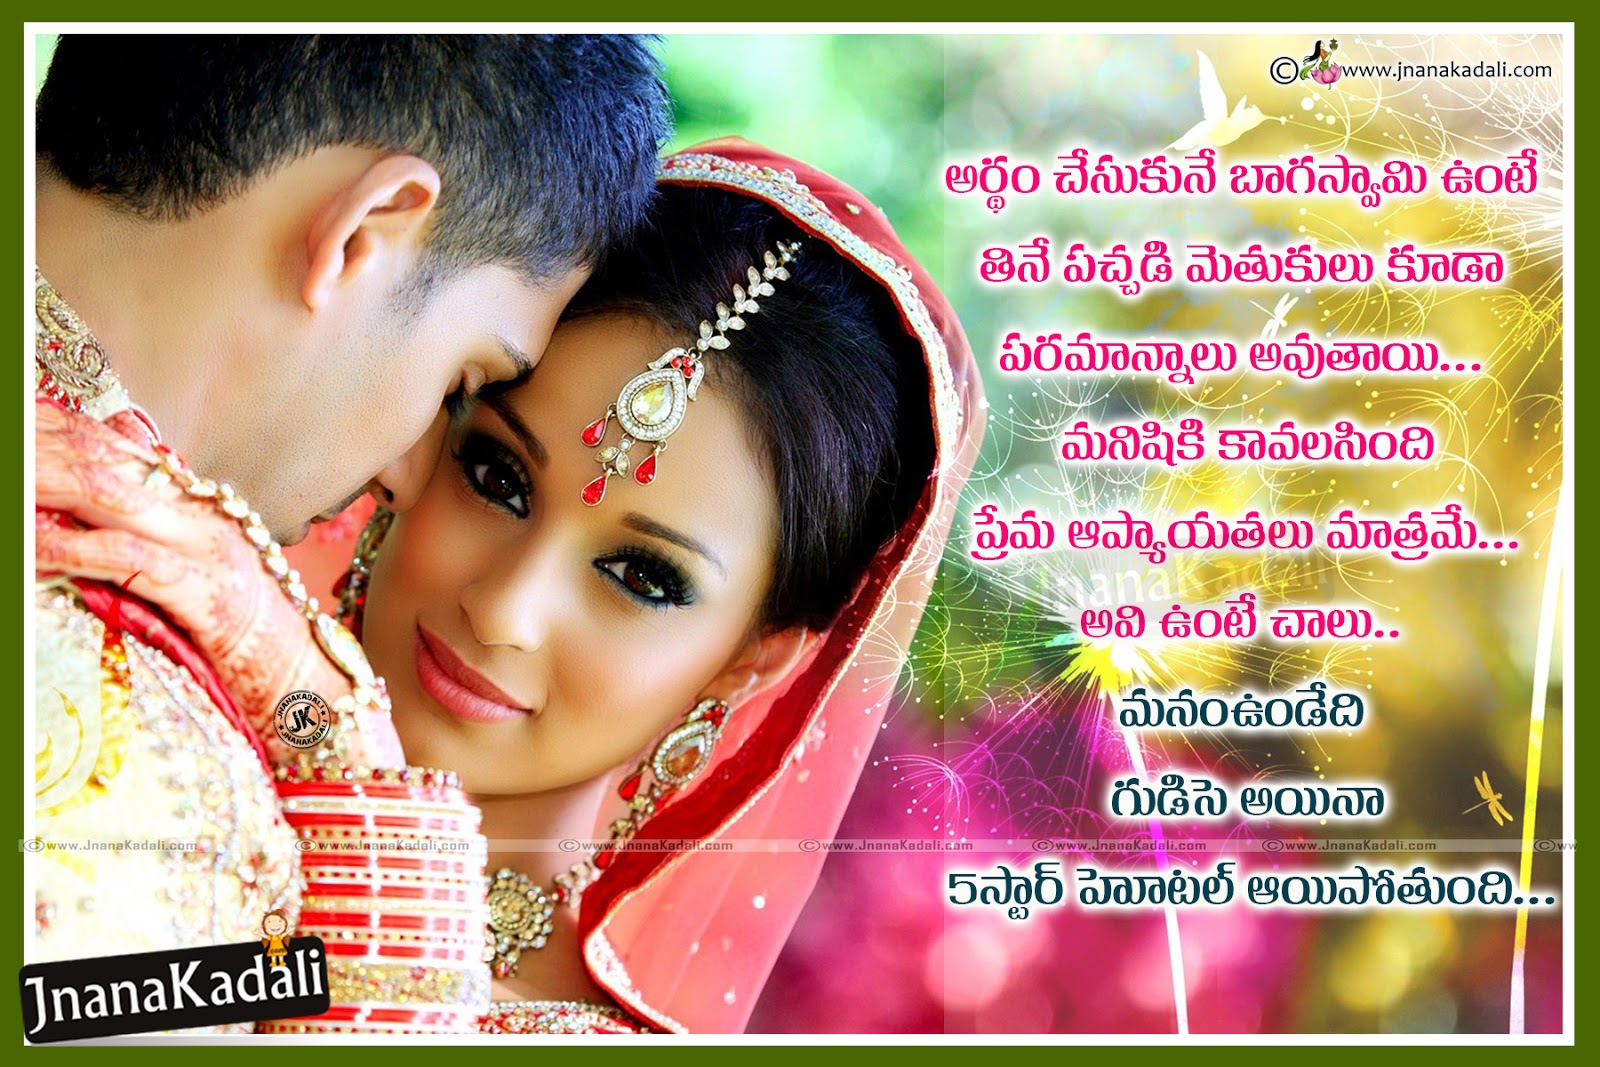 Telugu Best Wife And Husband Quotes Relationship Quotes In Telugu